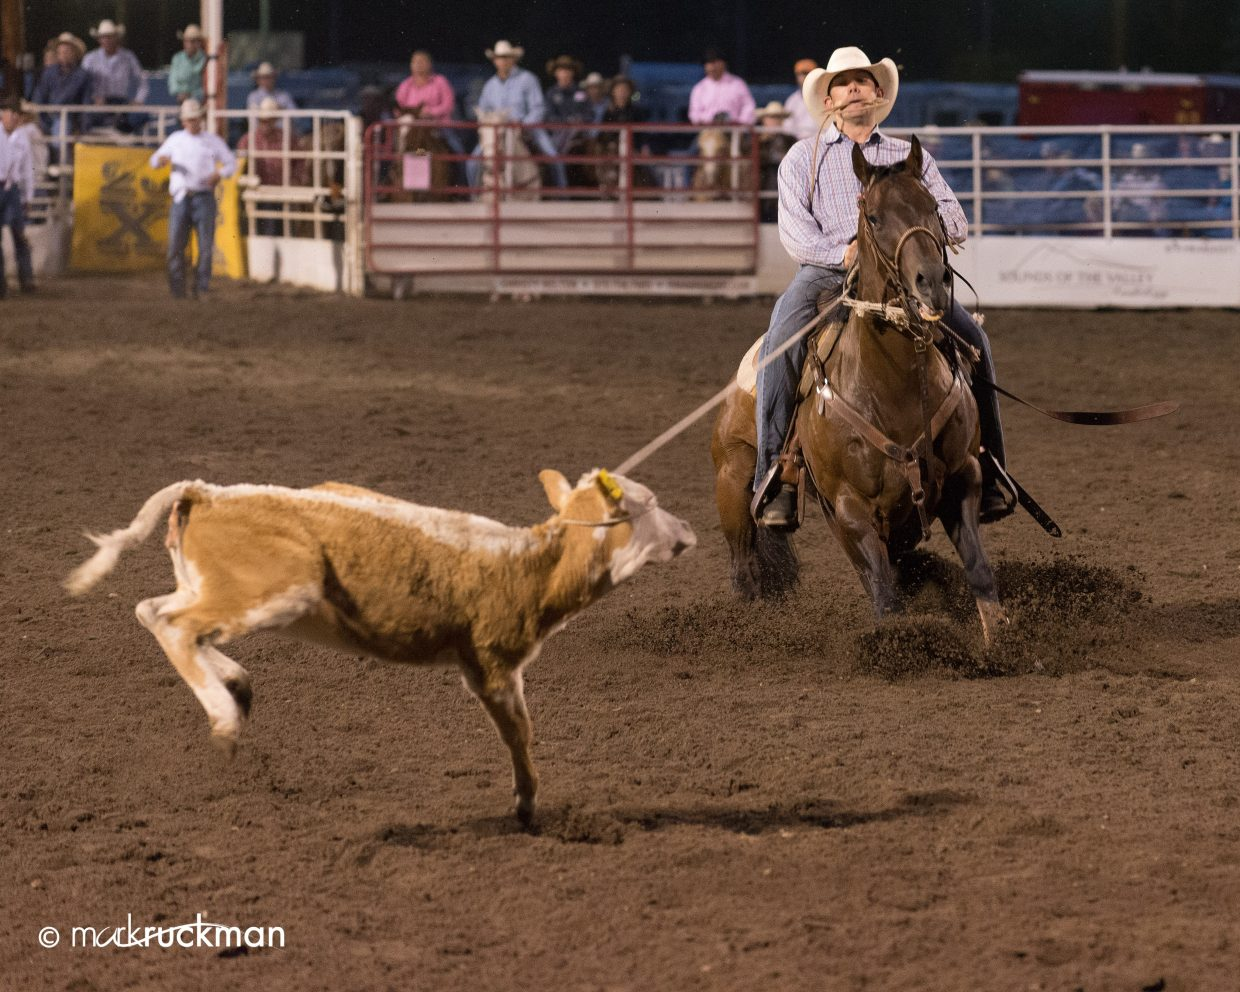 Friday night at the rodeo. Submitted by: Mark Ruckman